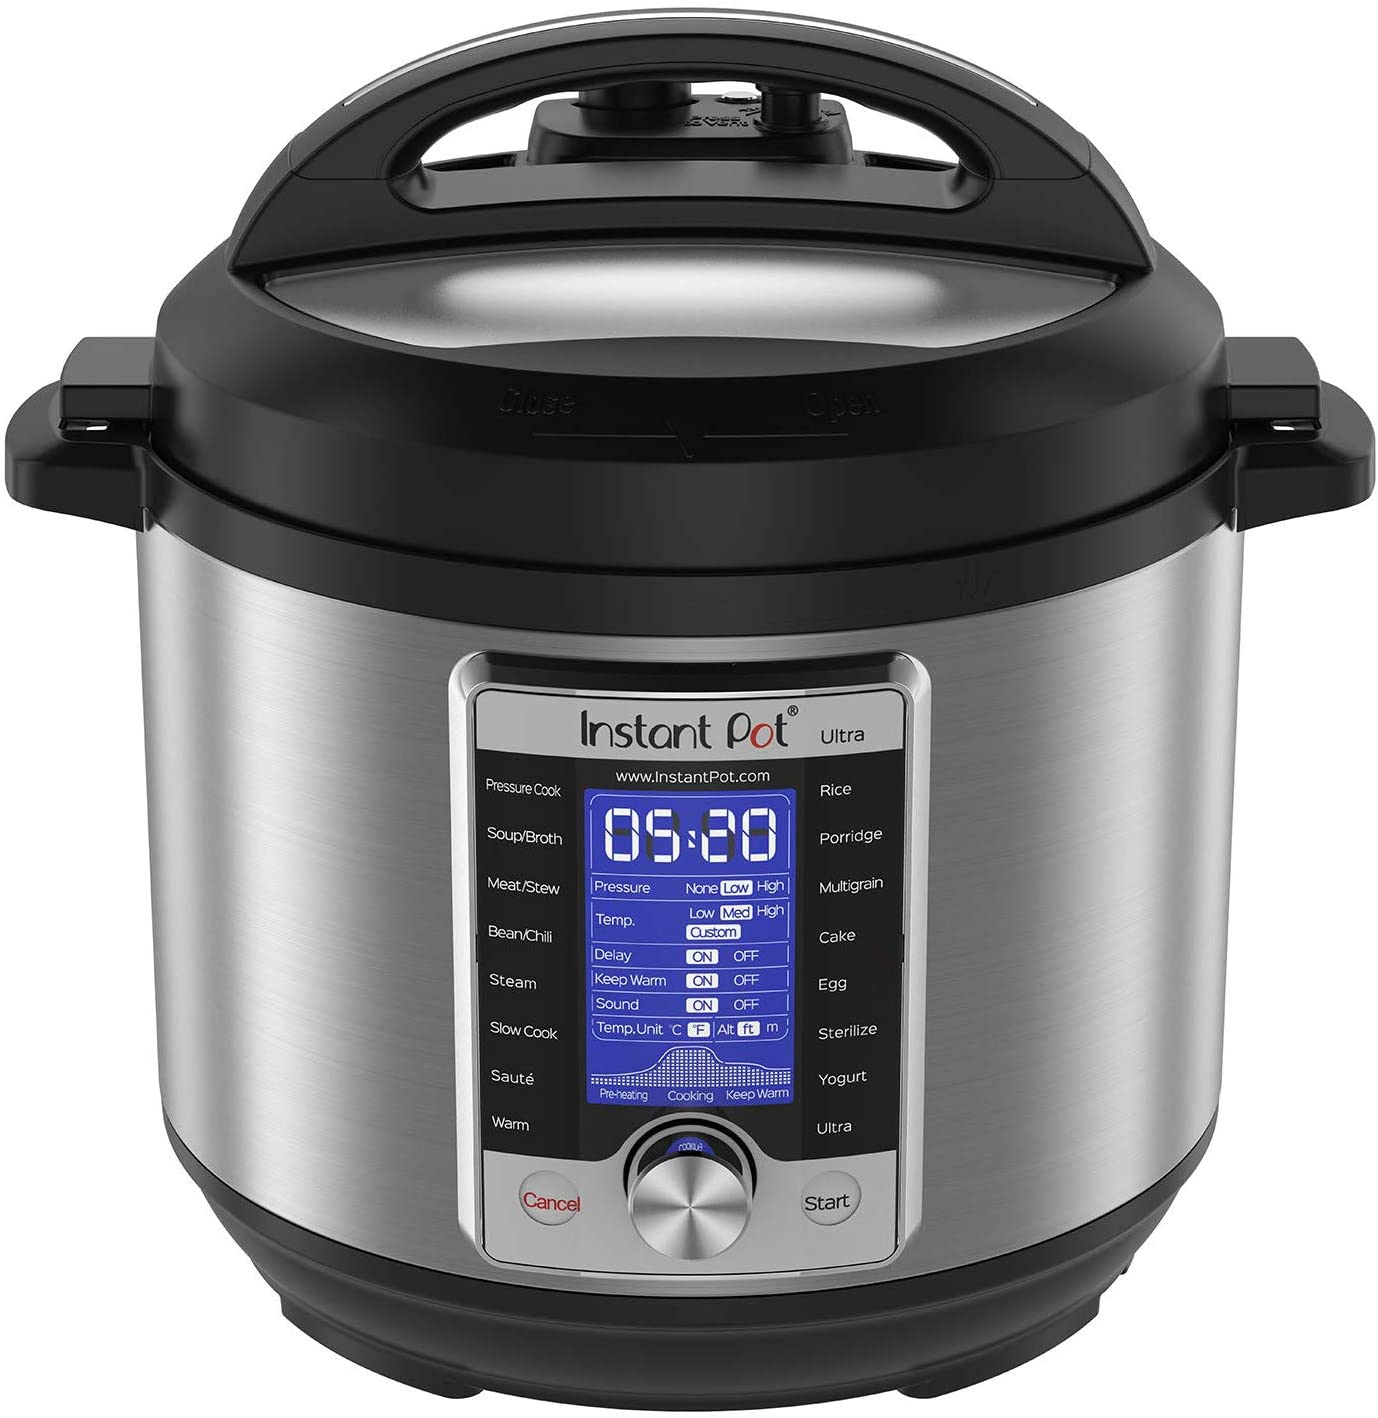 instant-pot-ultra-electric-pressure-cooker-6-quart-10-in-1-stainless-steel-2021-3-11